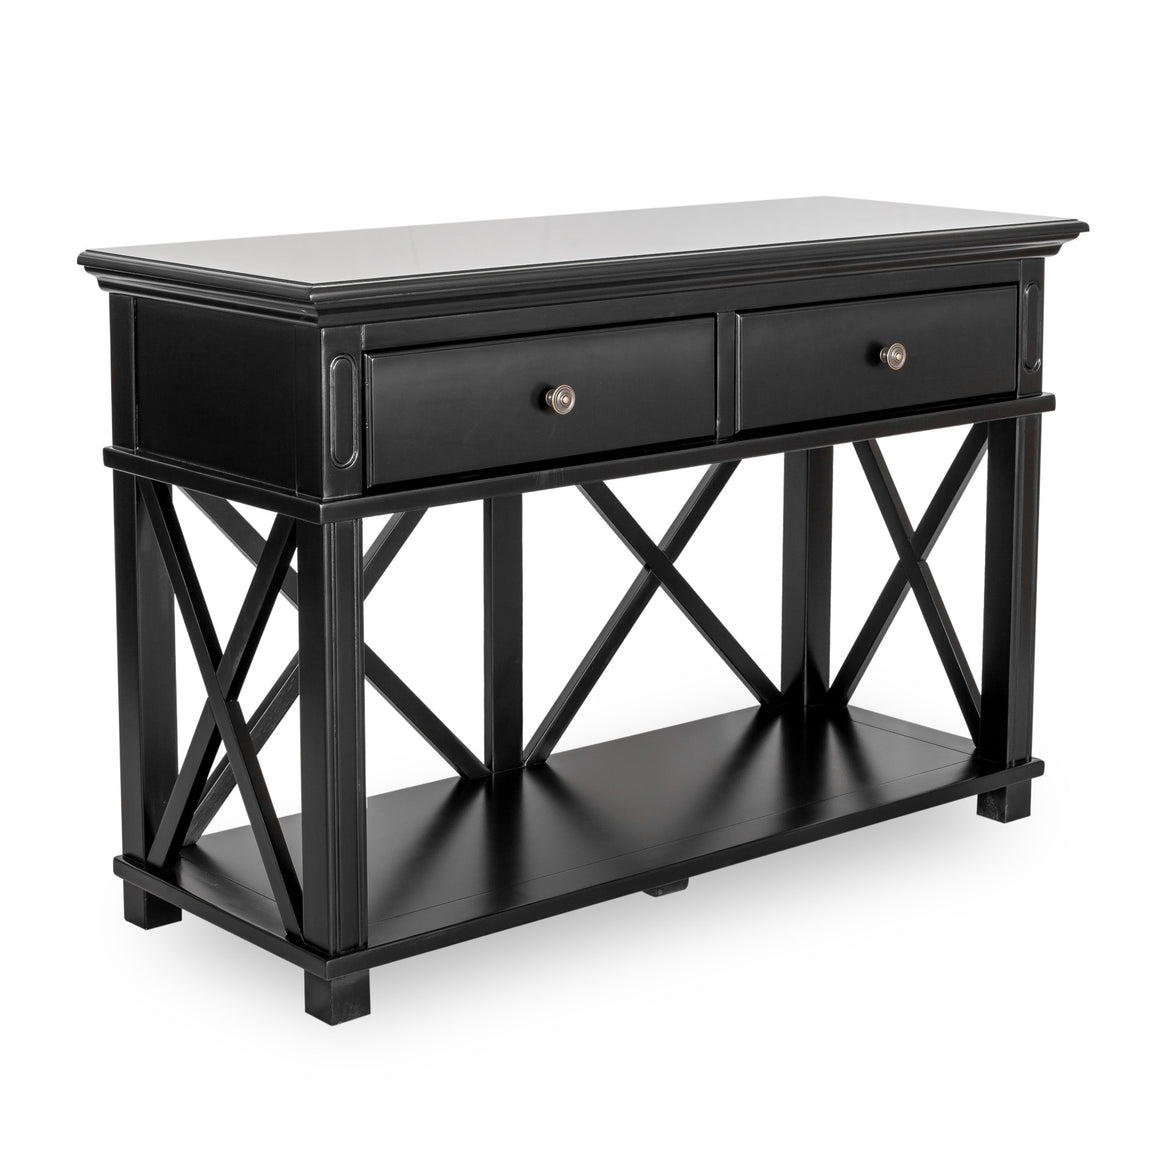 SORRENTO 2 DRAW BLACK CONSOLE